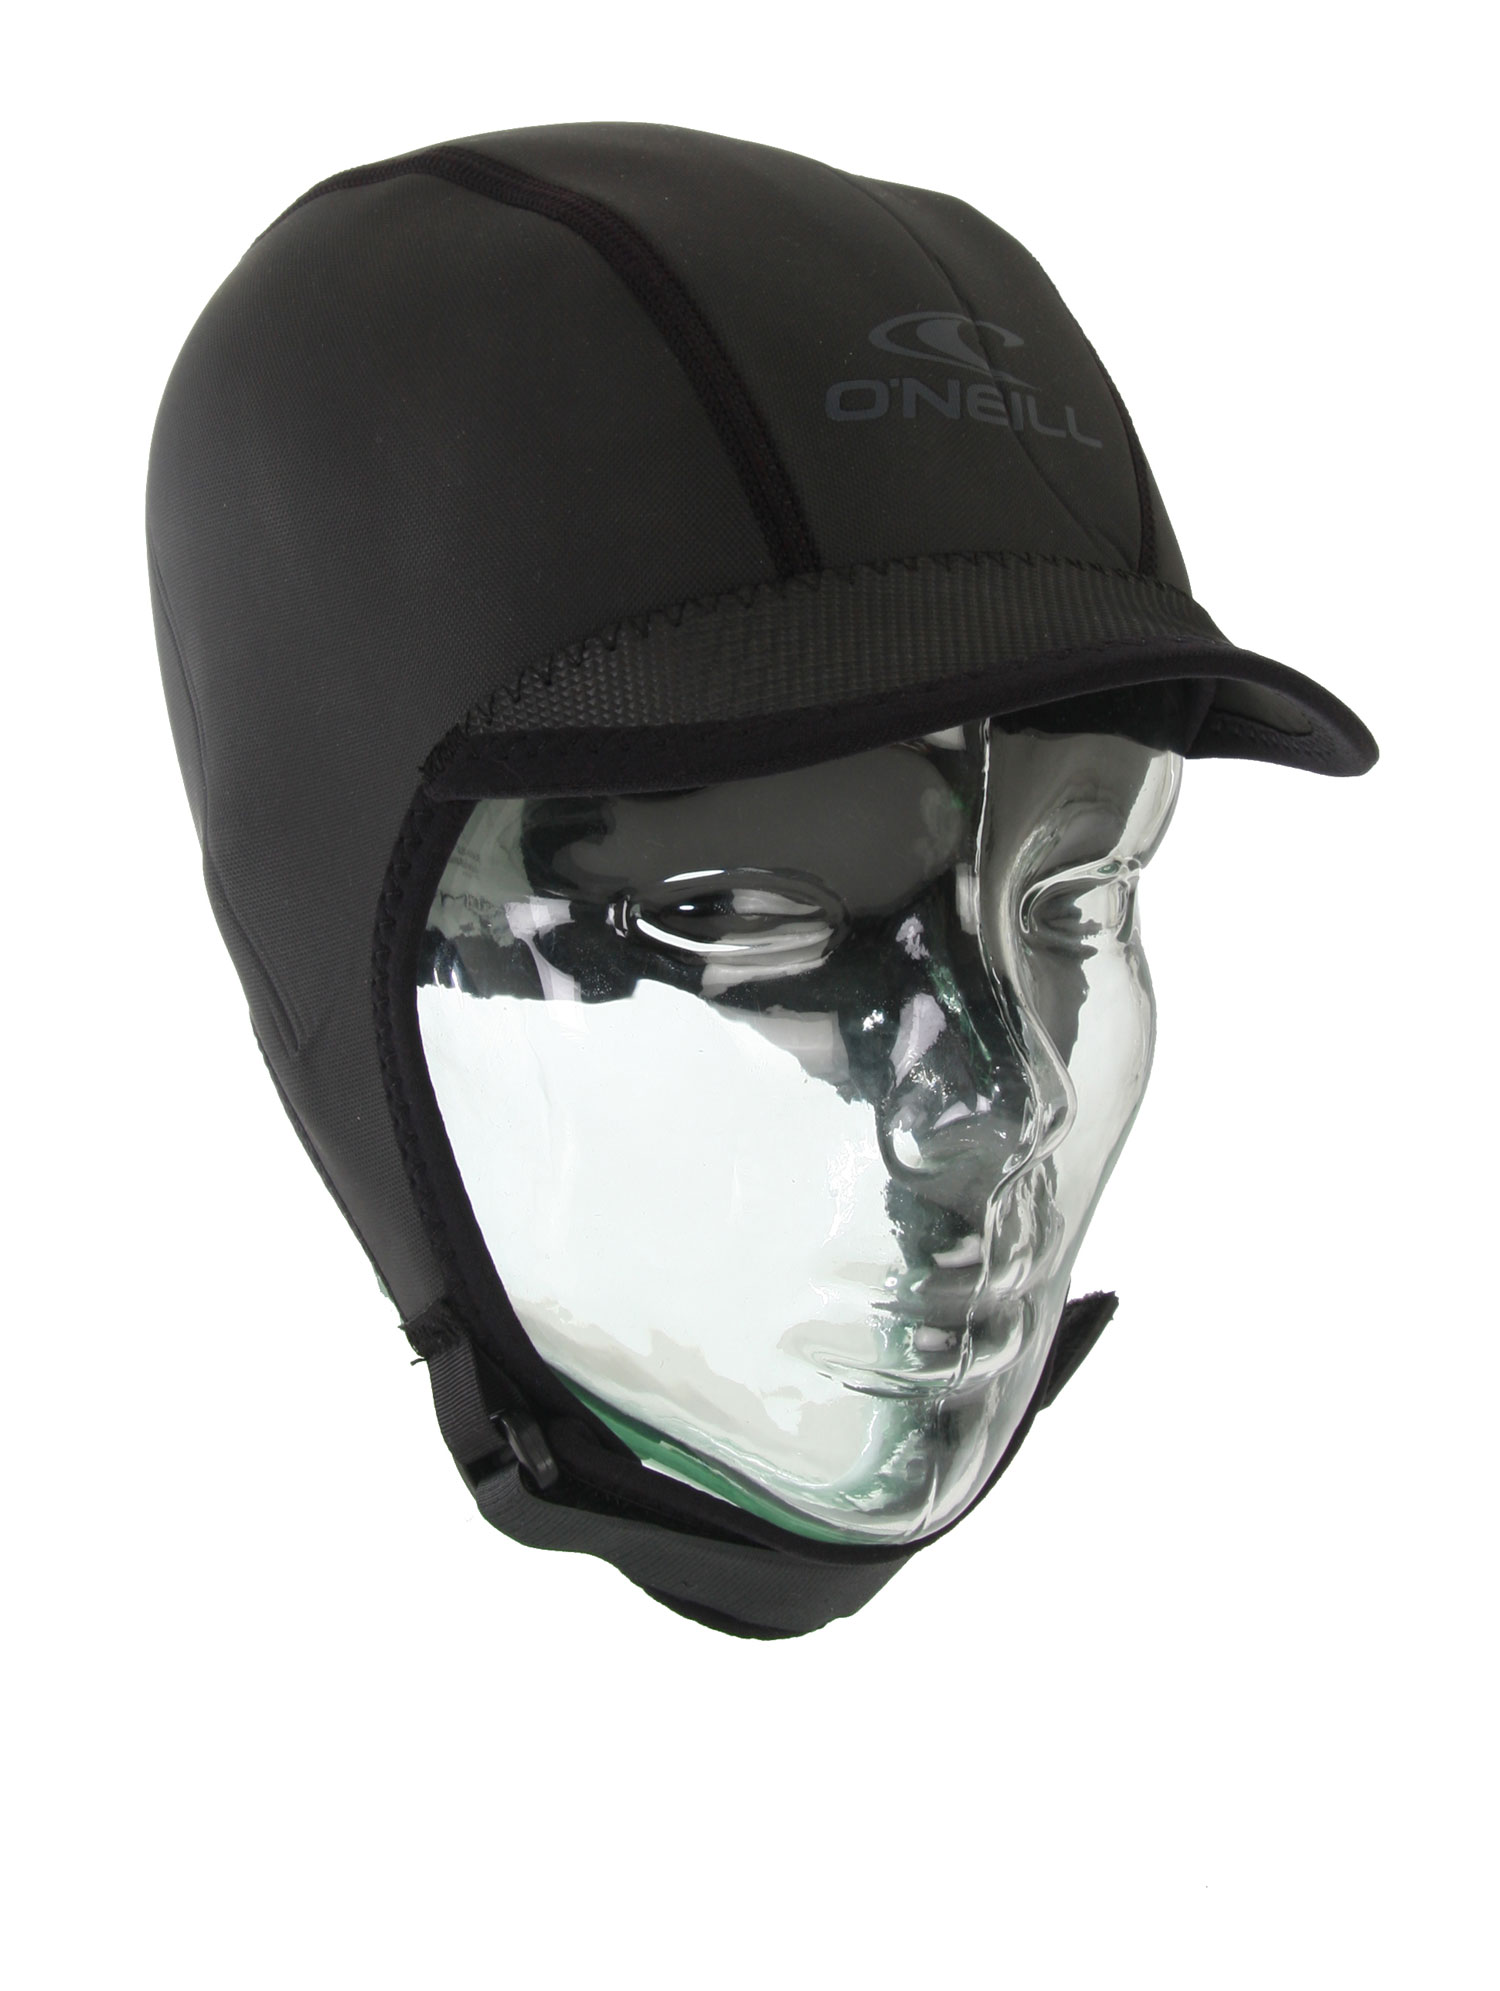 Surf Key Features of the O'Neill 2mm Sports Cap Black:Wind Resistant Smooth Skin (SL) Exterior - Flatloc Stitched - Lightweight Fluid Foam SL Neoprene - UV Protection - Visor Blocks Sun/Channels Water from Eyes - Adjustable Chin Strap - $35.95